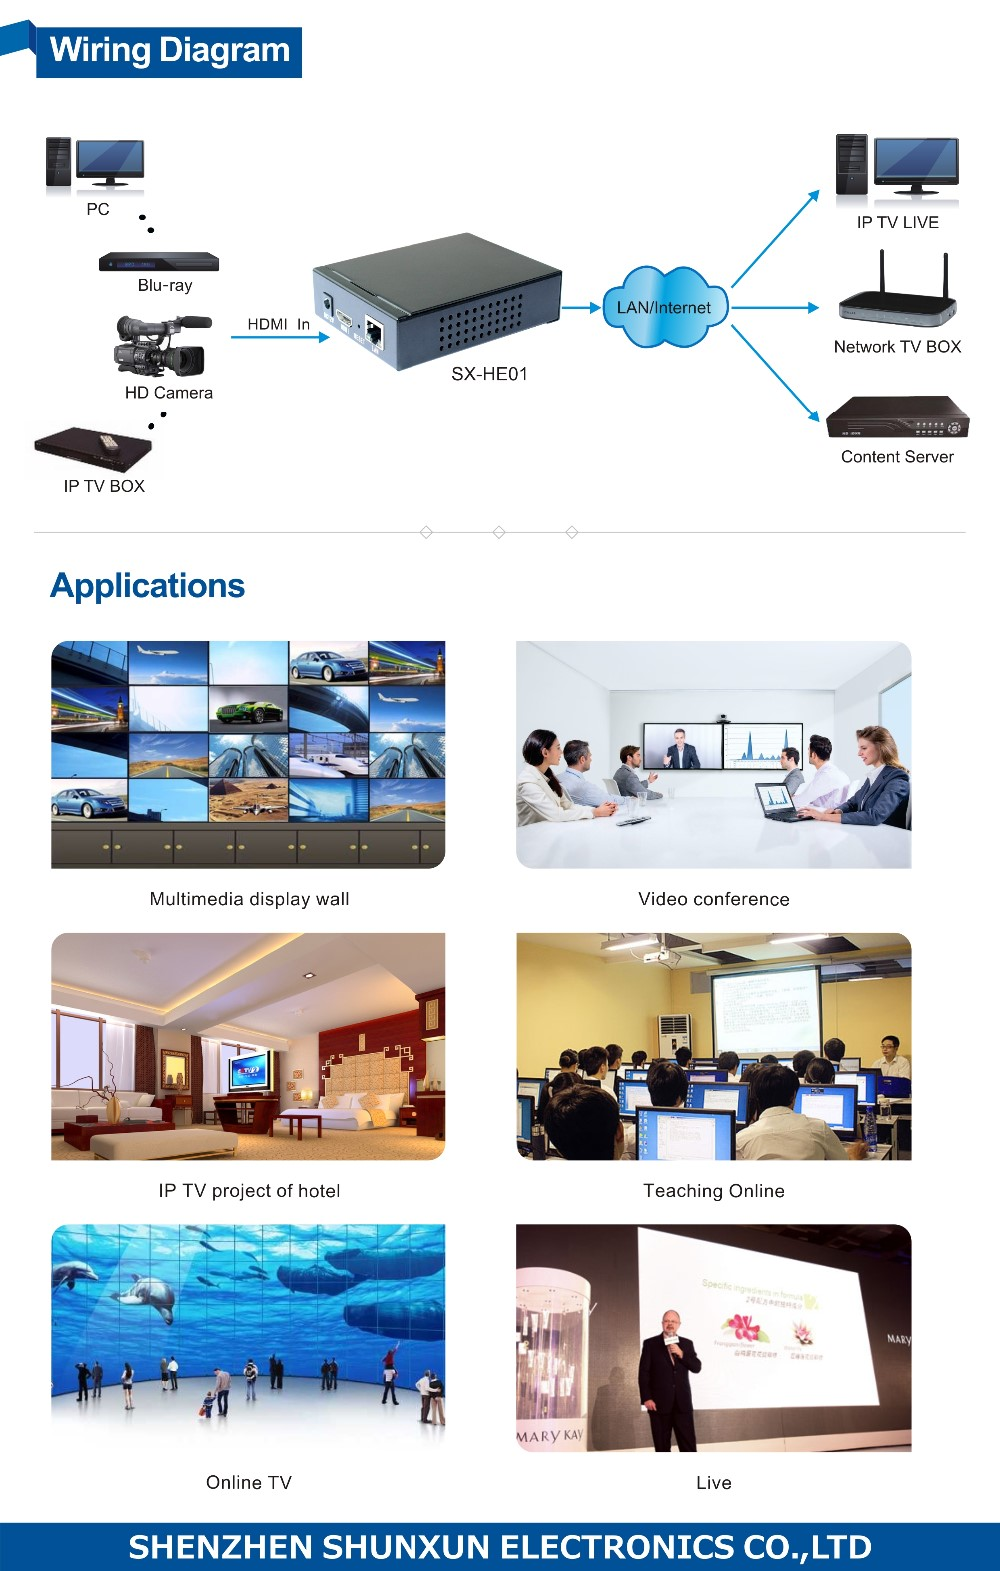 SX-HE01 HDMI to IP Converter H.264 HD HDMI Encoder for IP TV support UDP,HTTP,RTSP,RTMP ,ONVIF protocol